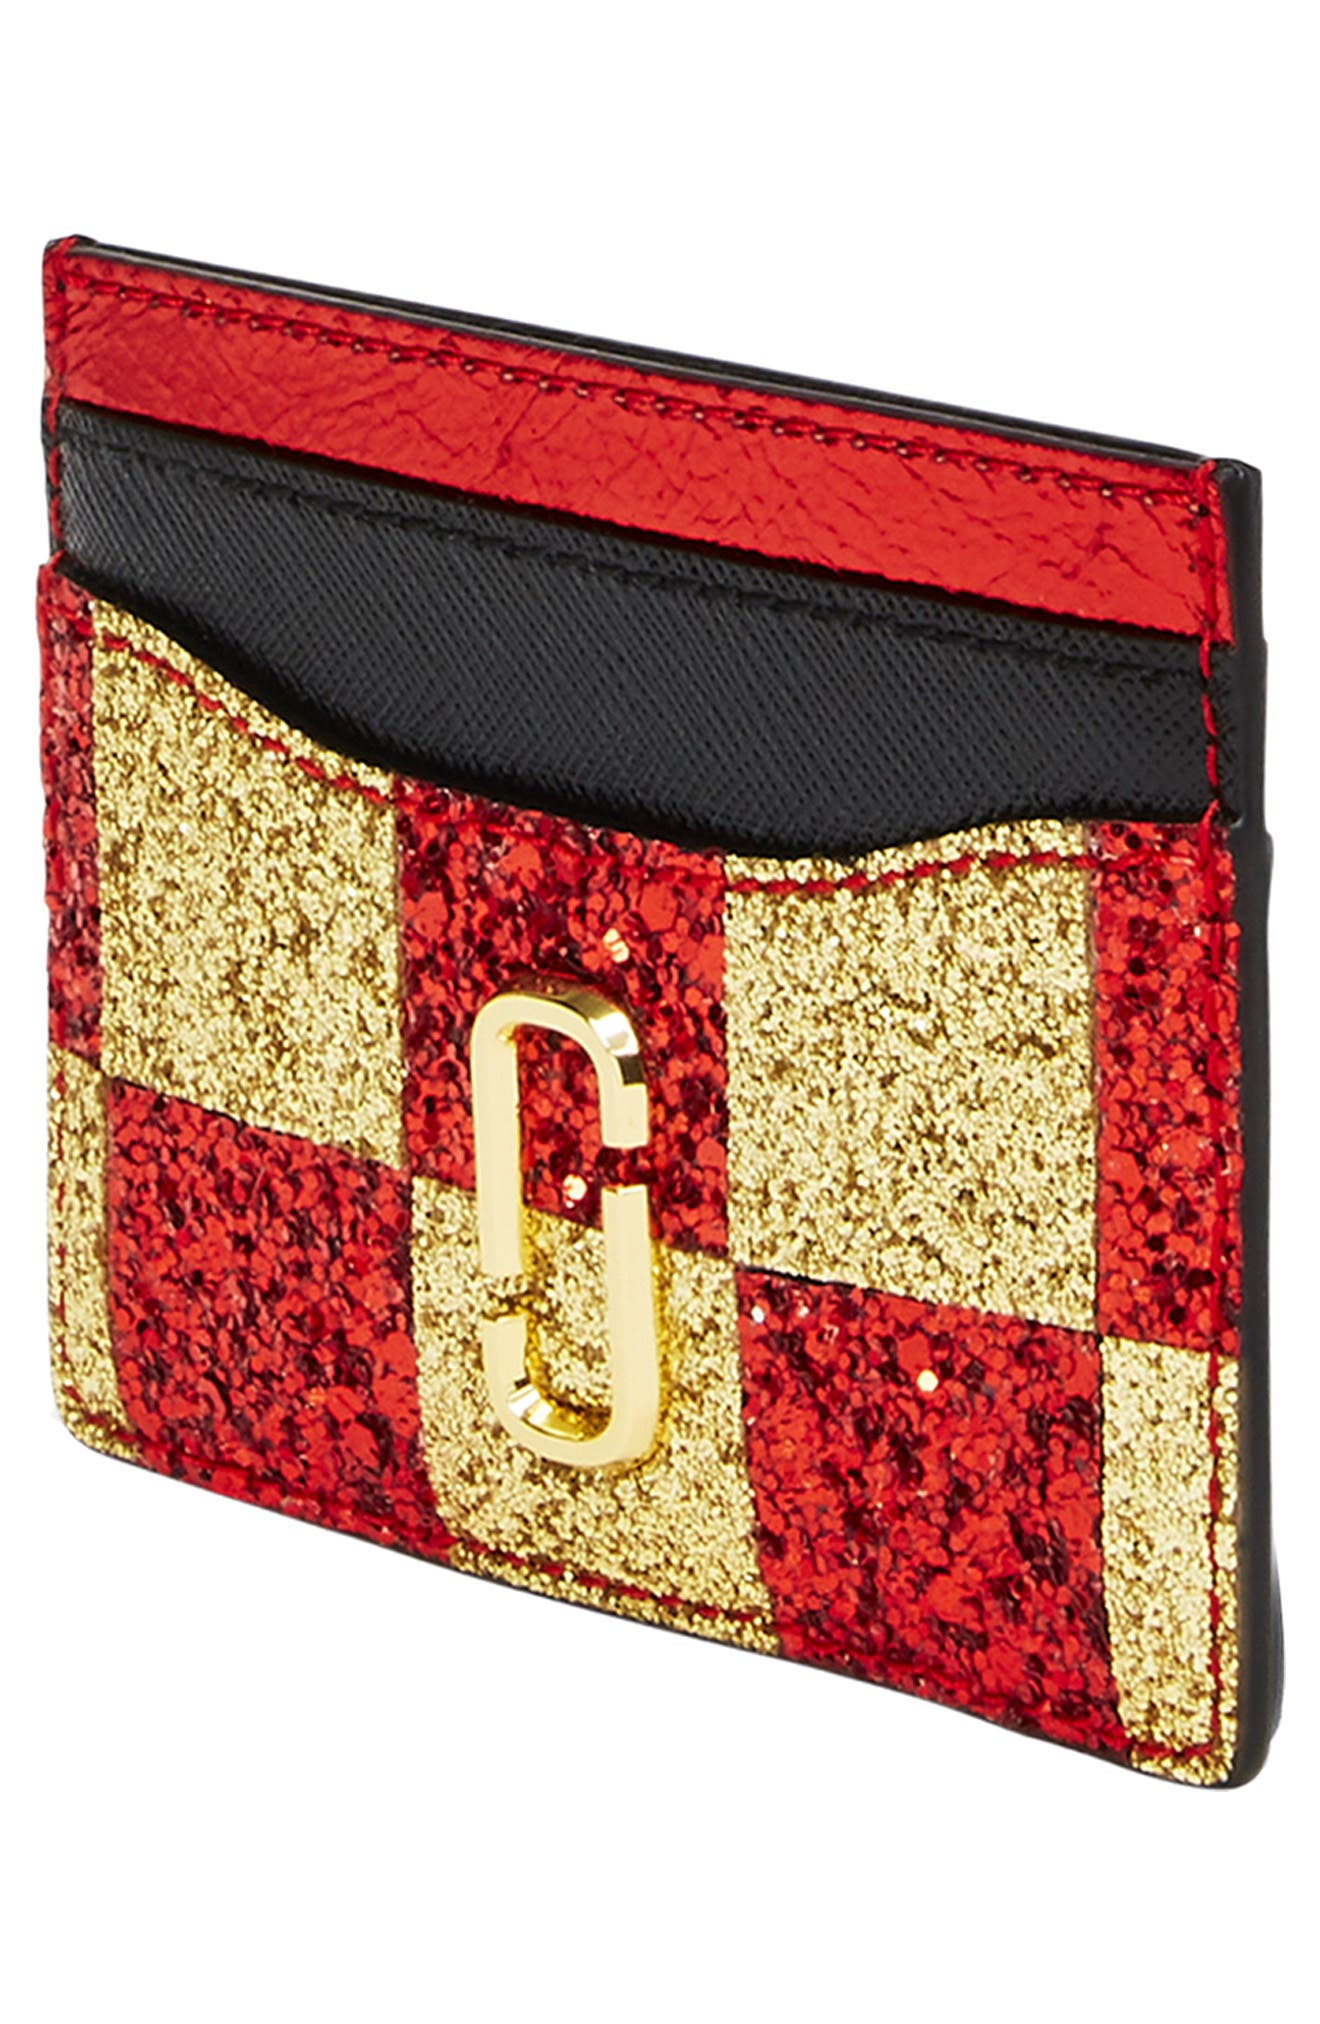 MARC JACOBS, Snapshot Glitter Checkerboard Card Case, Alternate thumbnail 3, color, GOLD MULTI